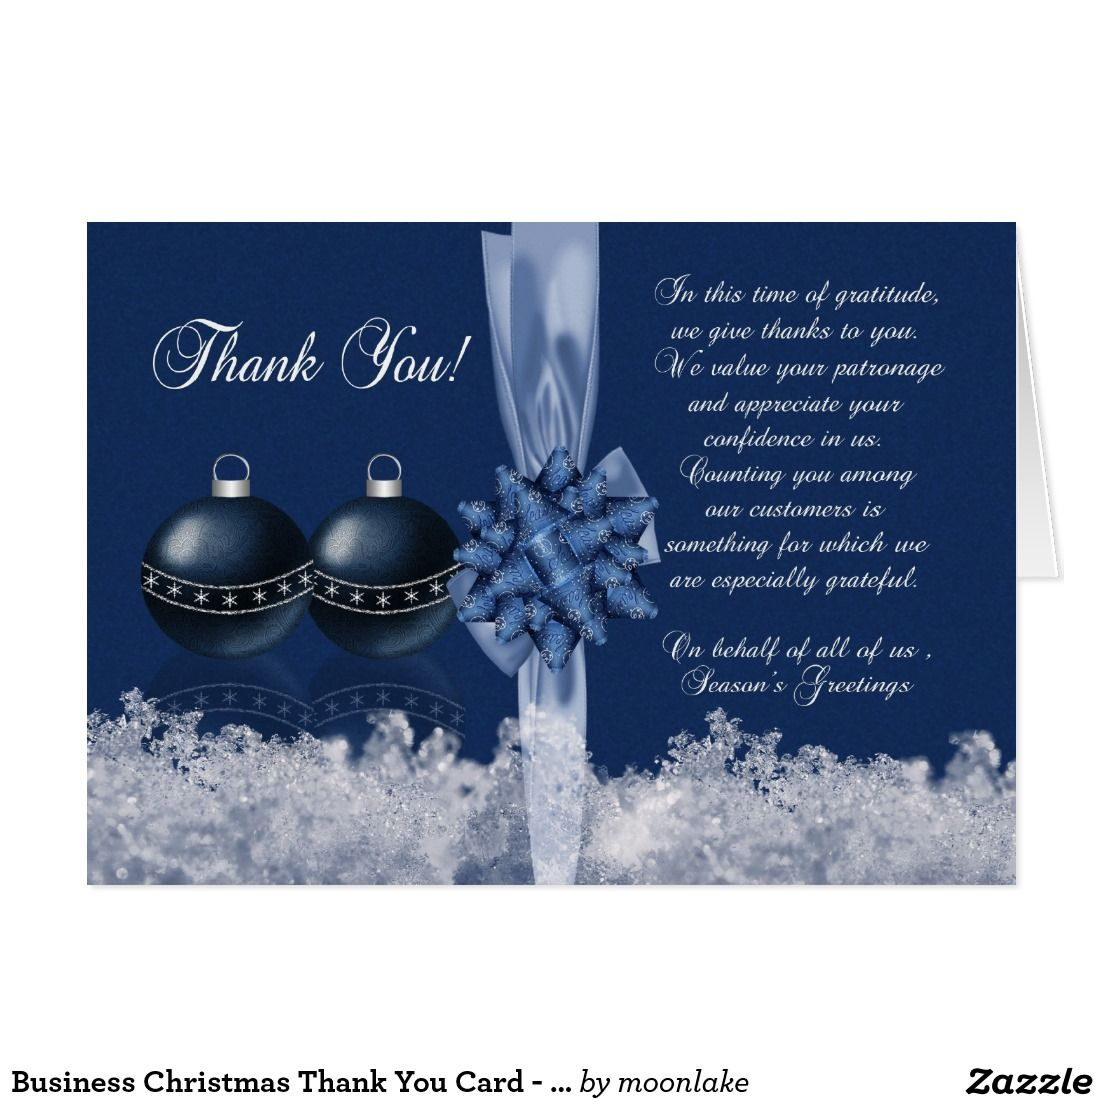 Business christmas thank you card seasons greet season business christmas thank you card seasons greet kristyandbryce Image collections